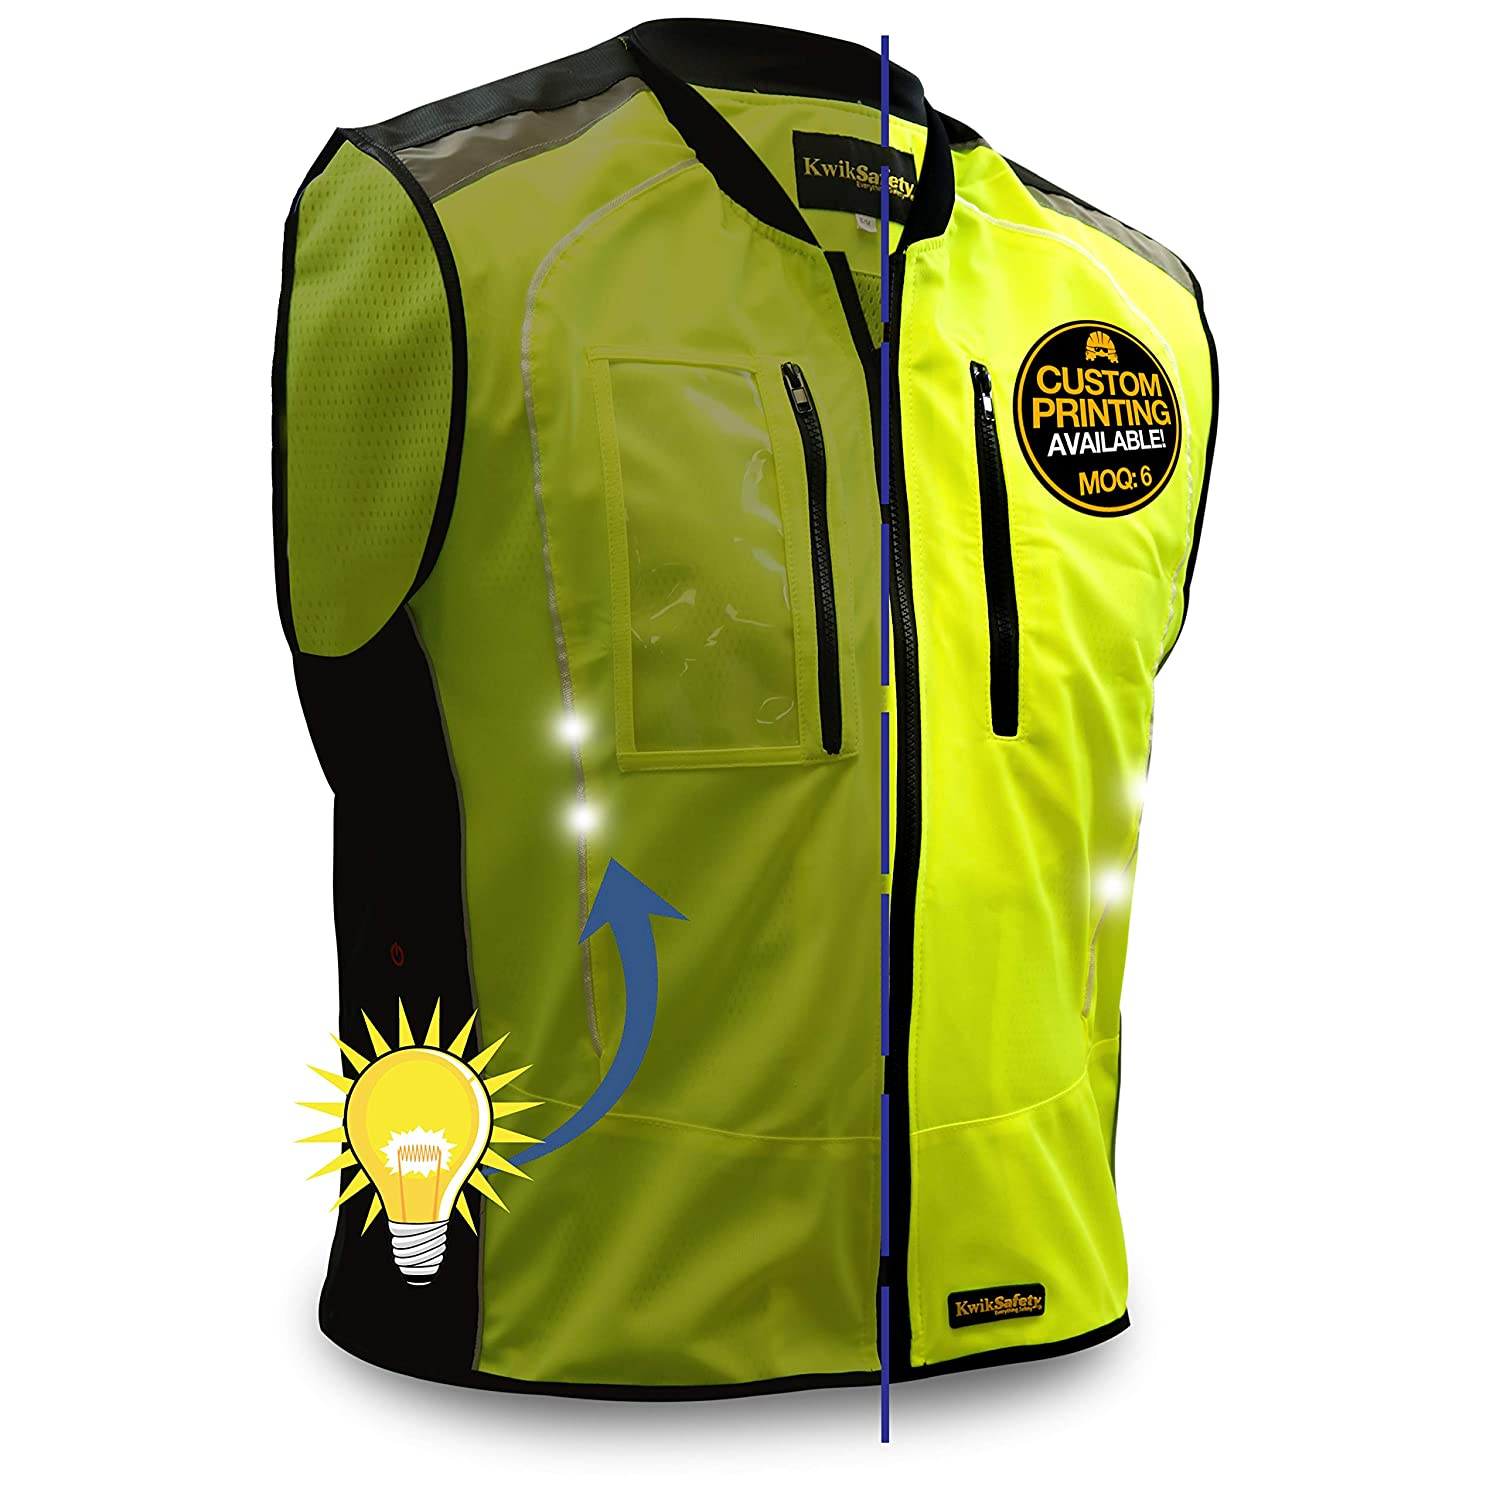 KwikSafety Motorcycle Vest With LED For Running Cycling犬ウォーキング、高い可視性と防水反射バイクギア、サイクリング安全服、電話ポケット& ID、山、メンズ&レディース Large / X-Large イエロー B01N950V7B  Large / X-Large